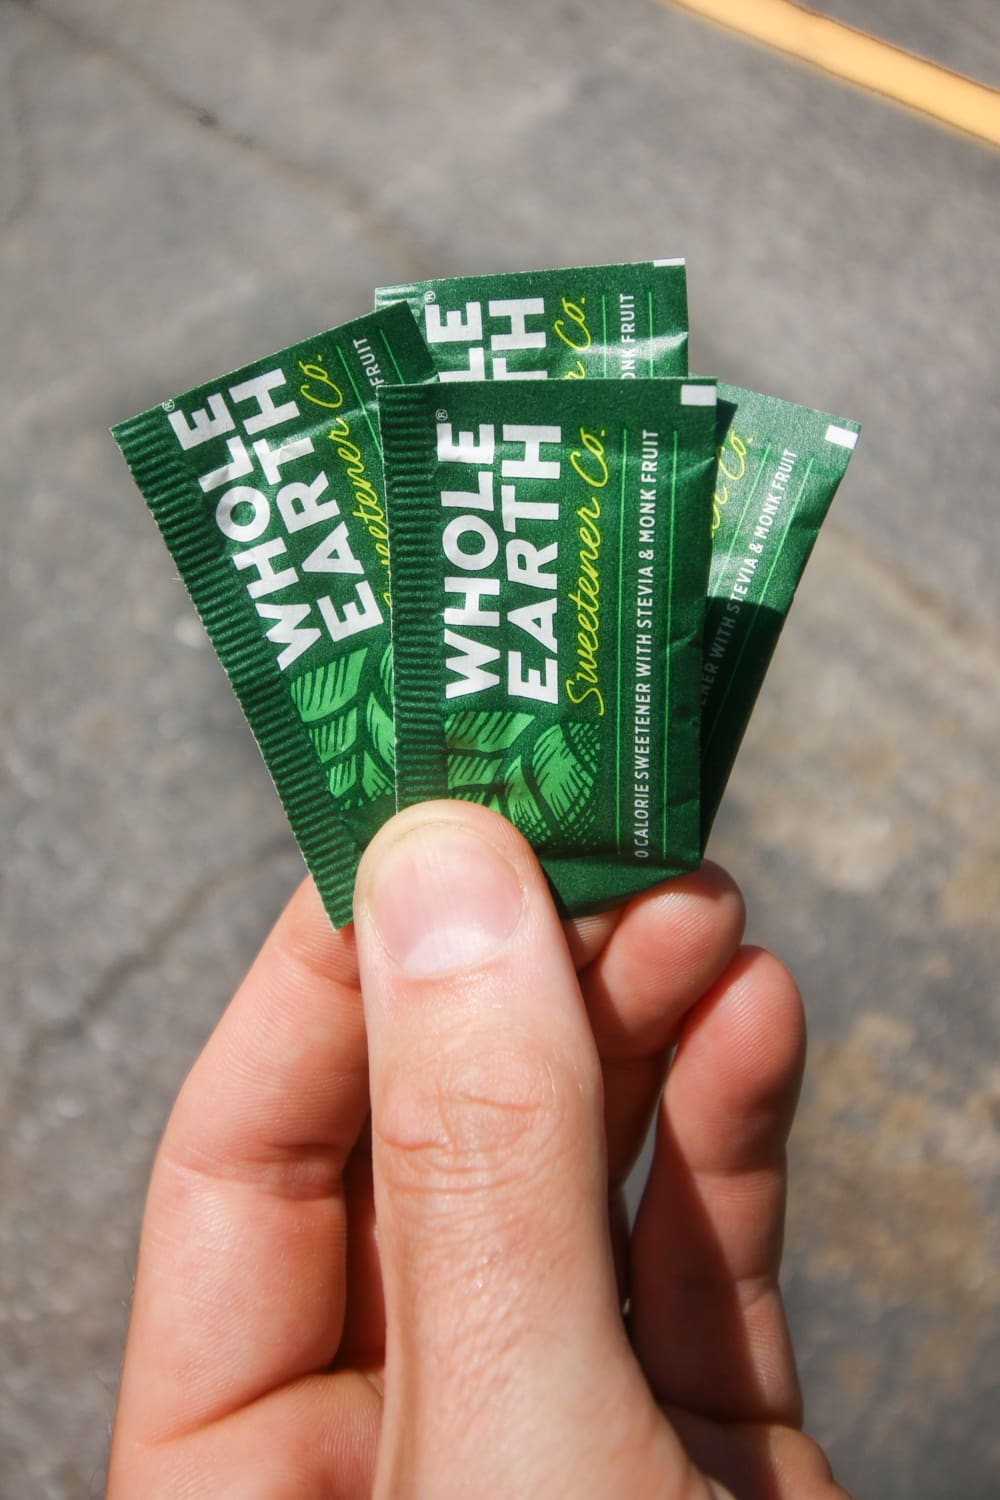 0 Carb sweetener packets being held by a hand.